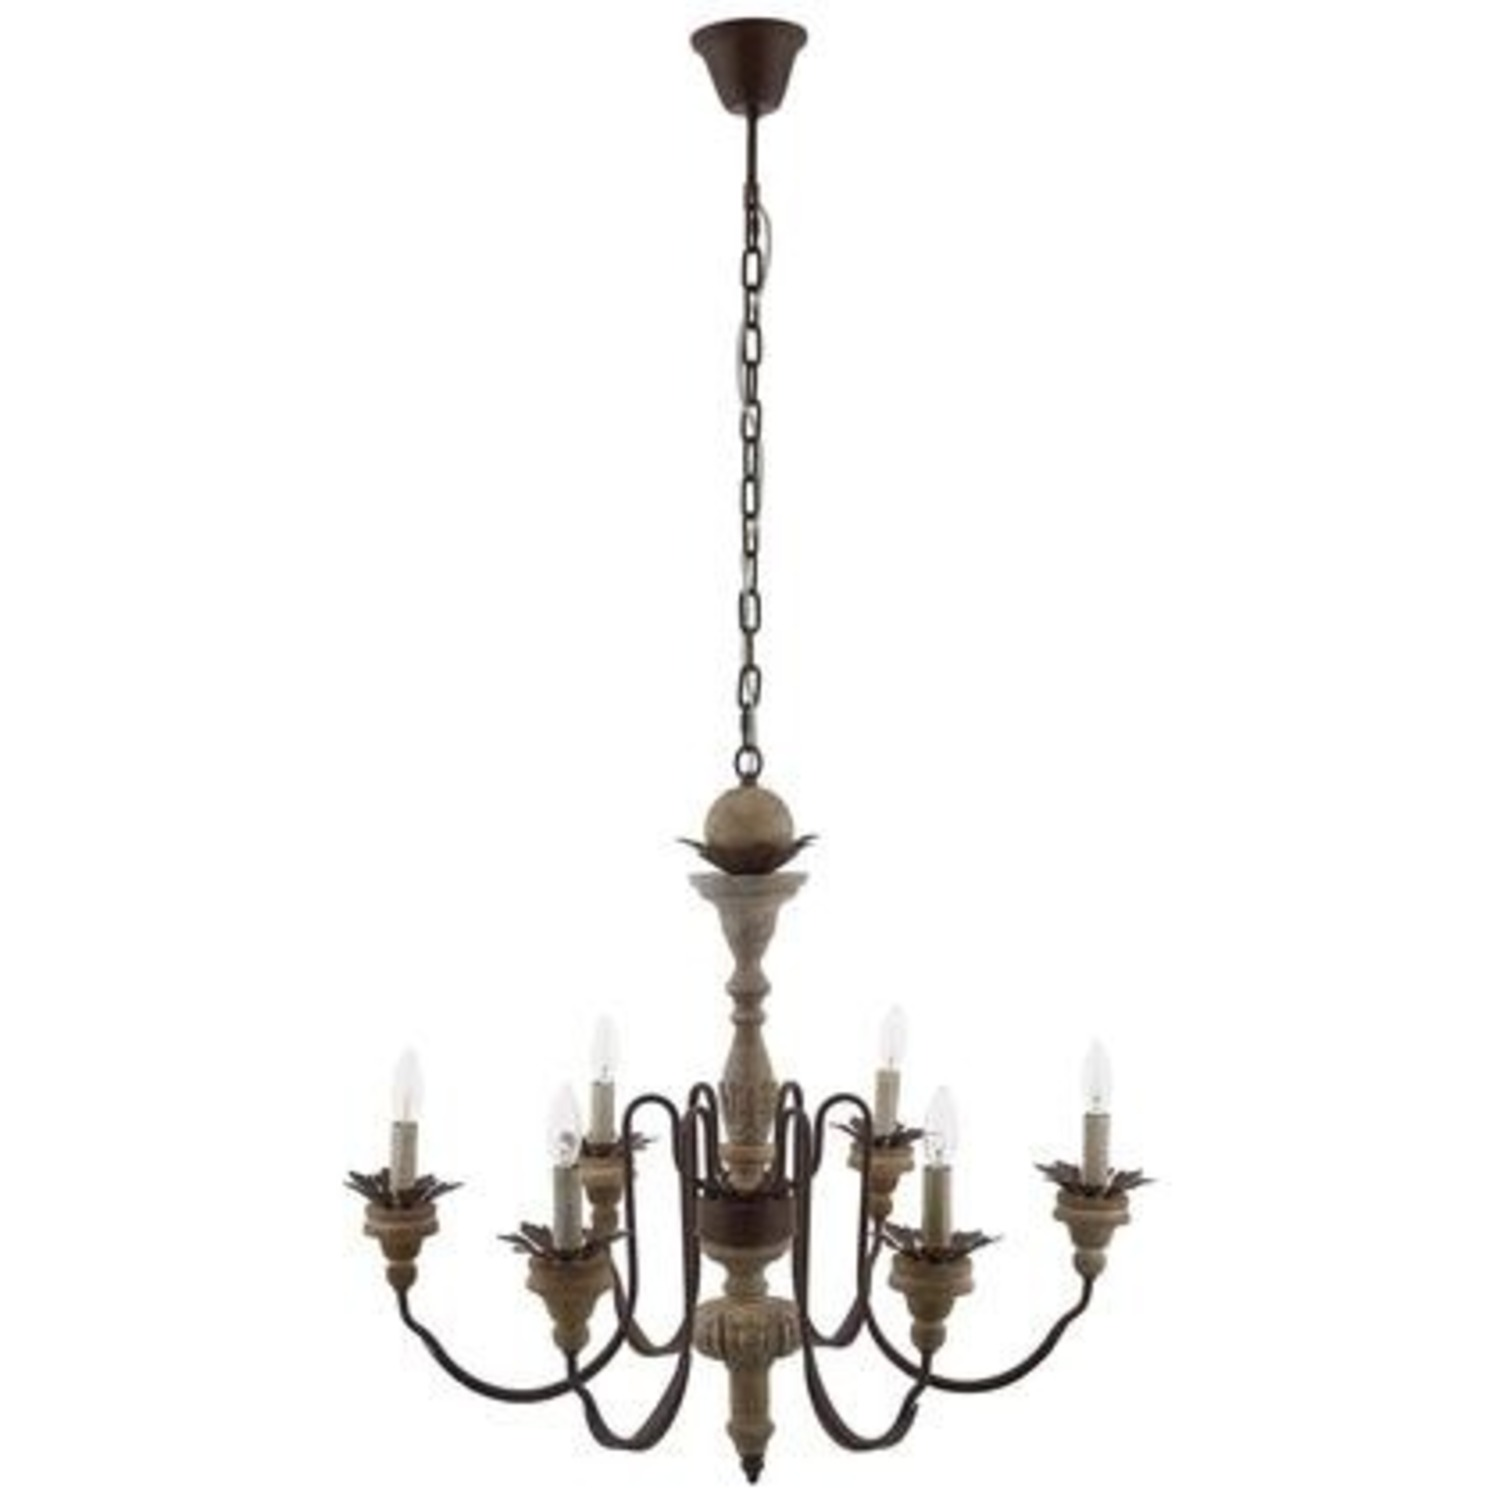 Vintage French Chandelier In Antique Metal Arms - image-0